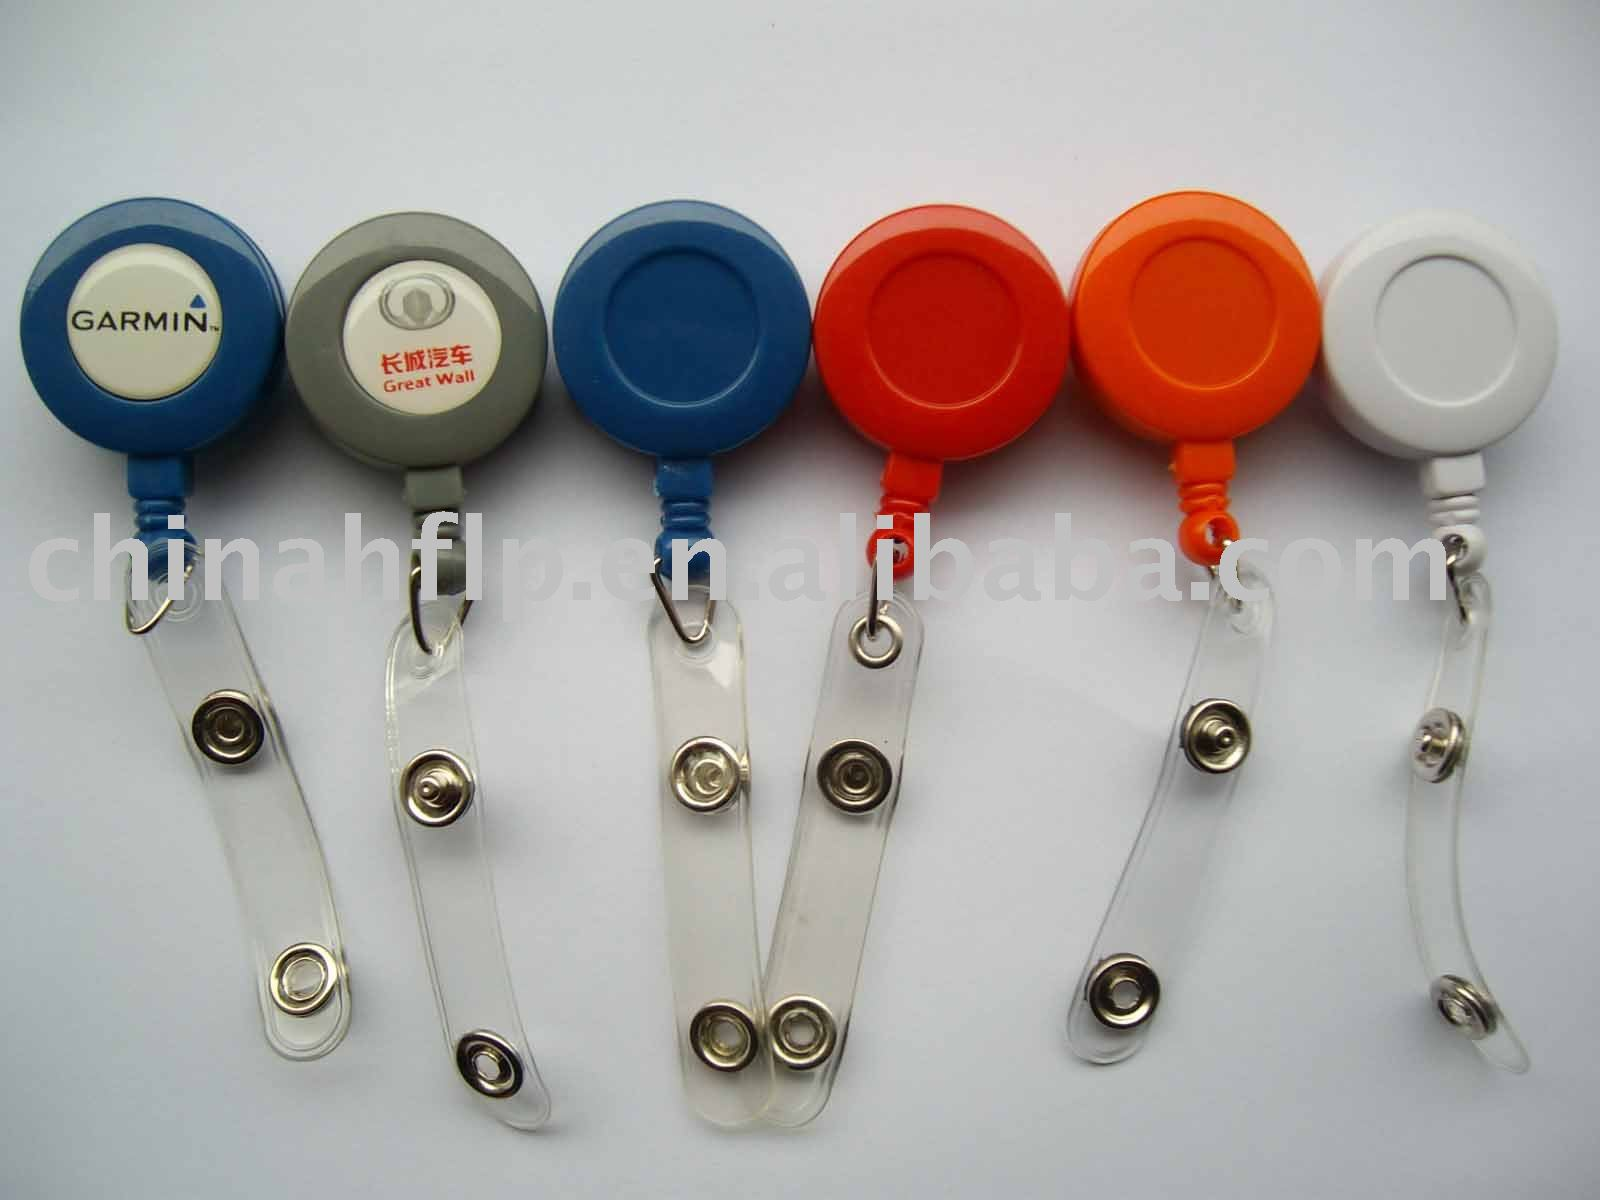 deffrent colors standard size yoyo badge holder use for carton fair or worker badge holder(China (Mainland))